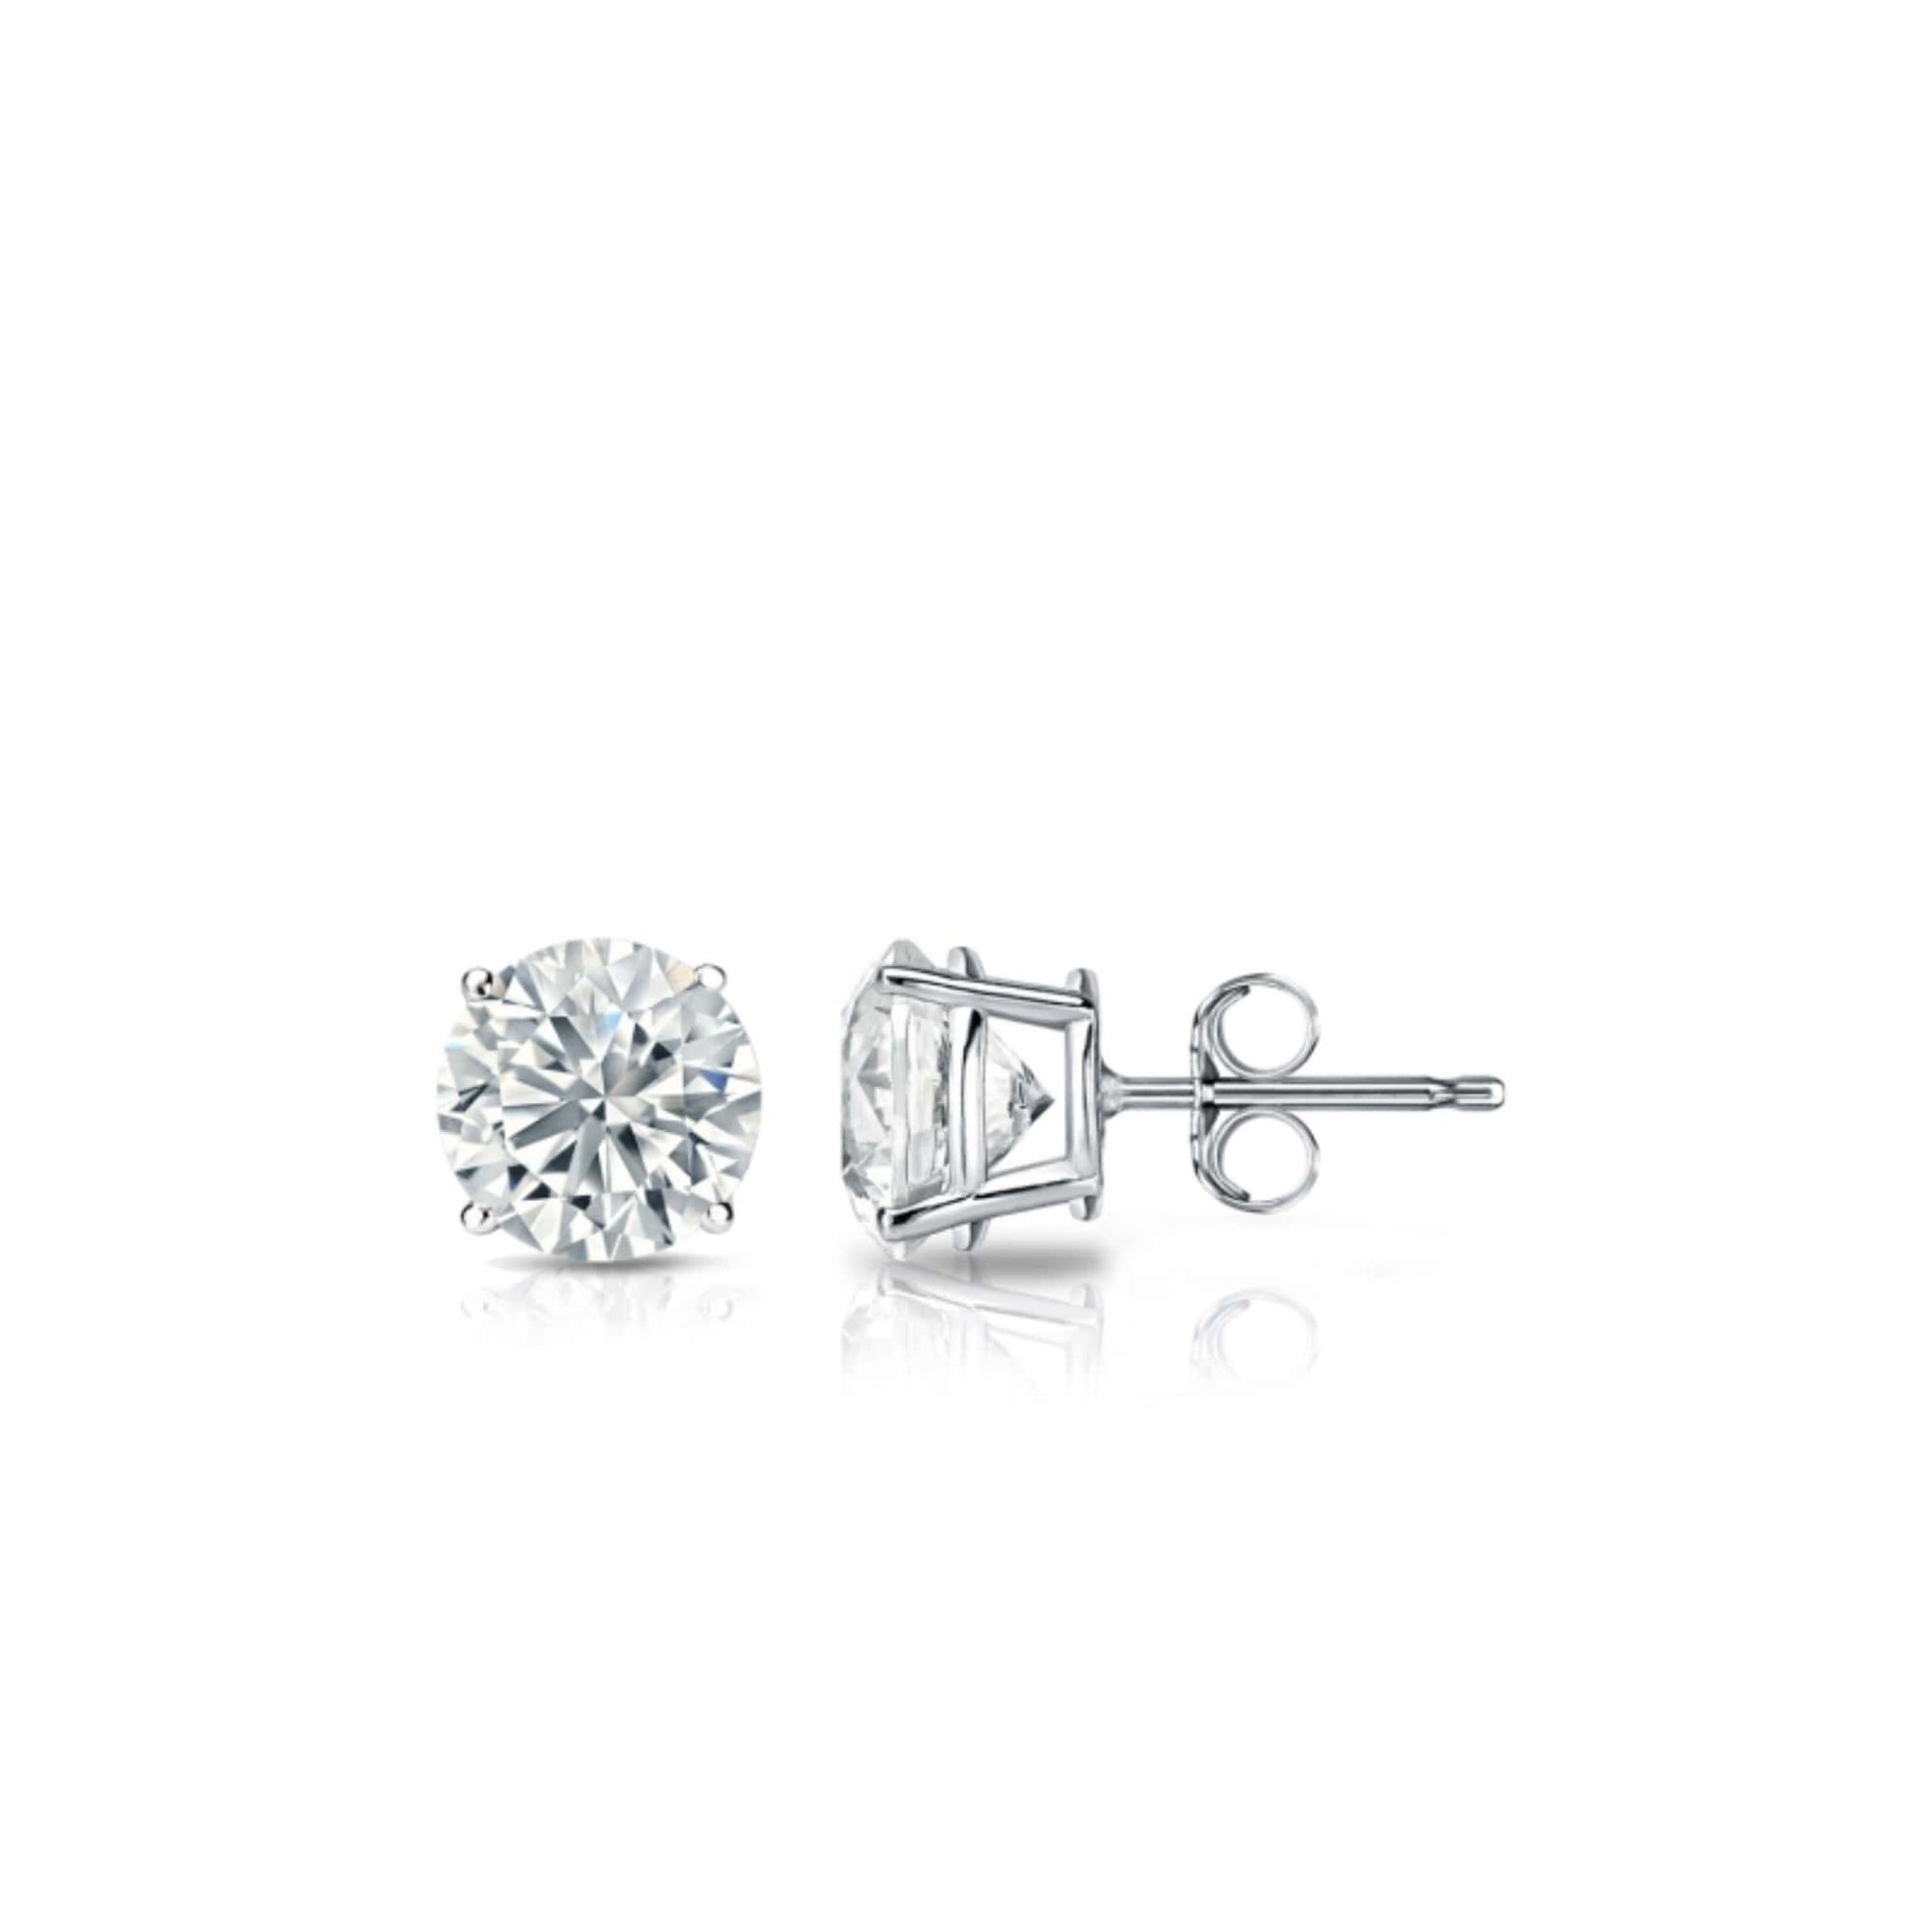 14K White Gold Diamond Stud Earrings (0.56 CT. TW.) at Arman's Jewellers